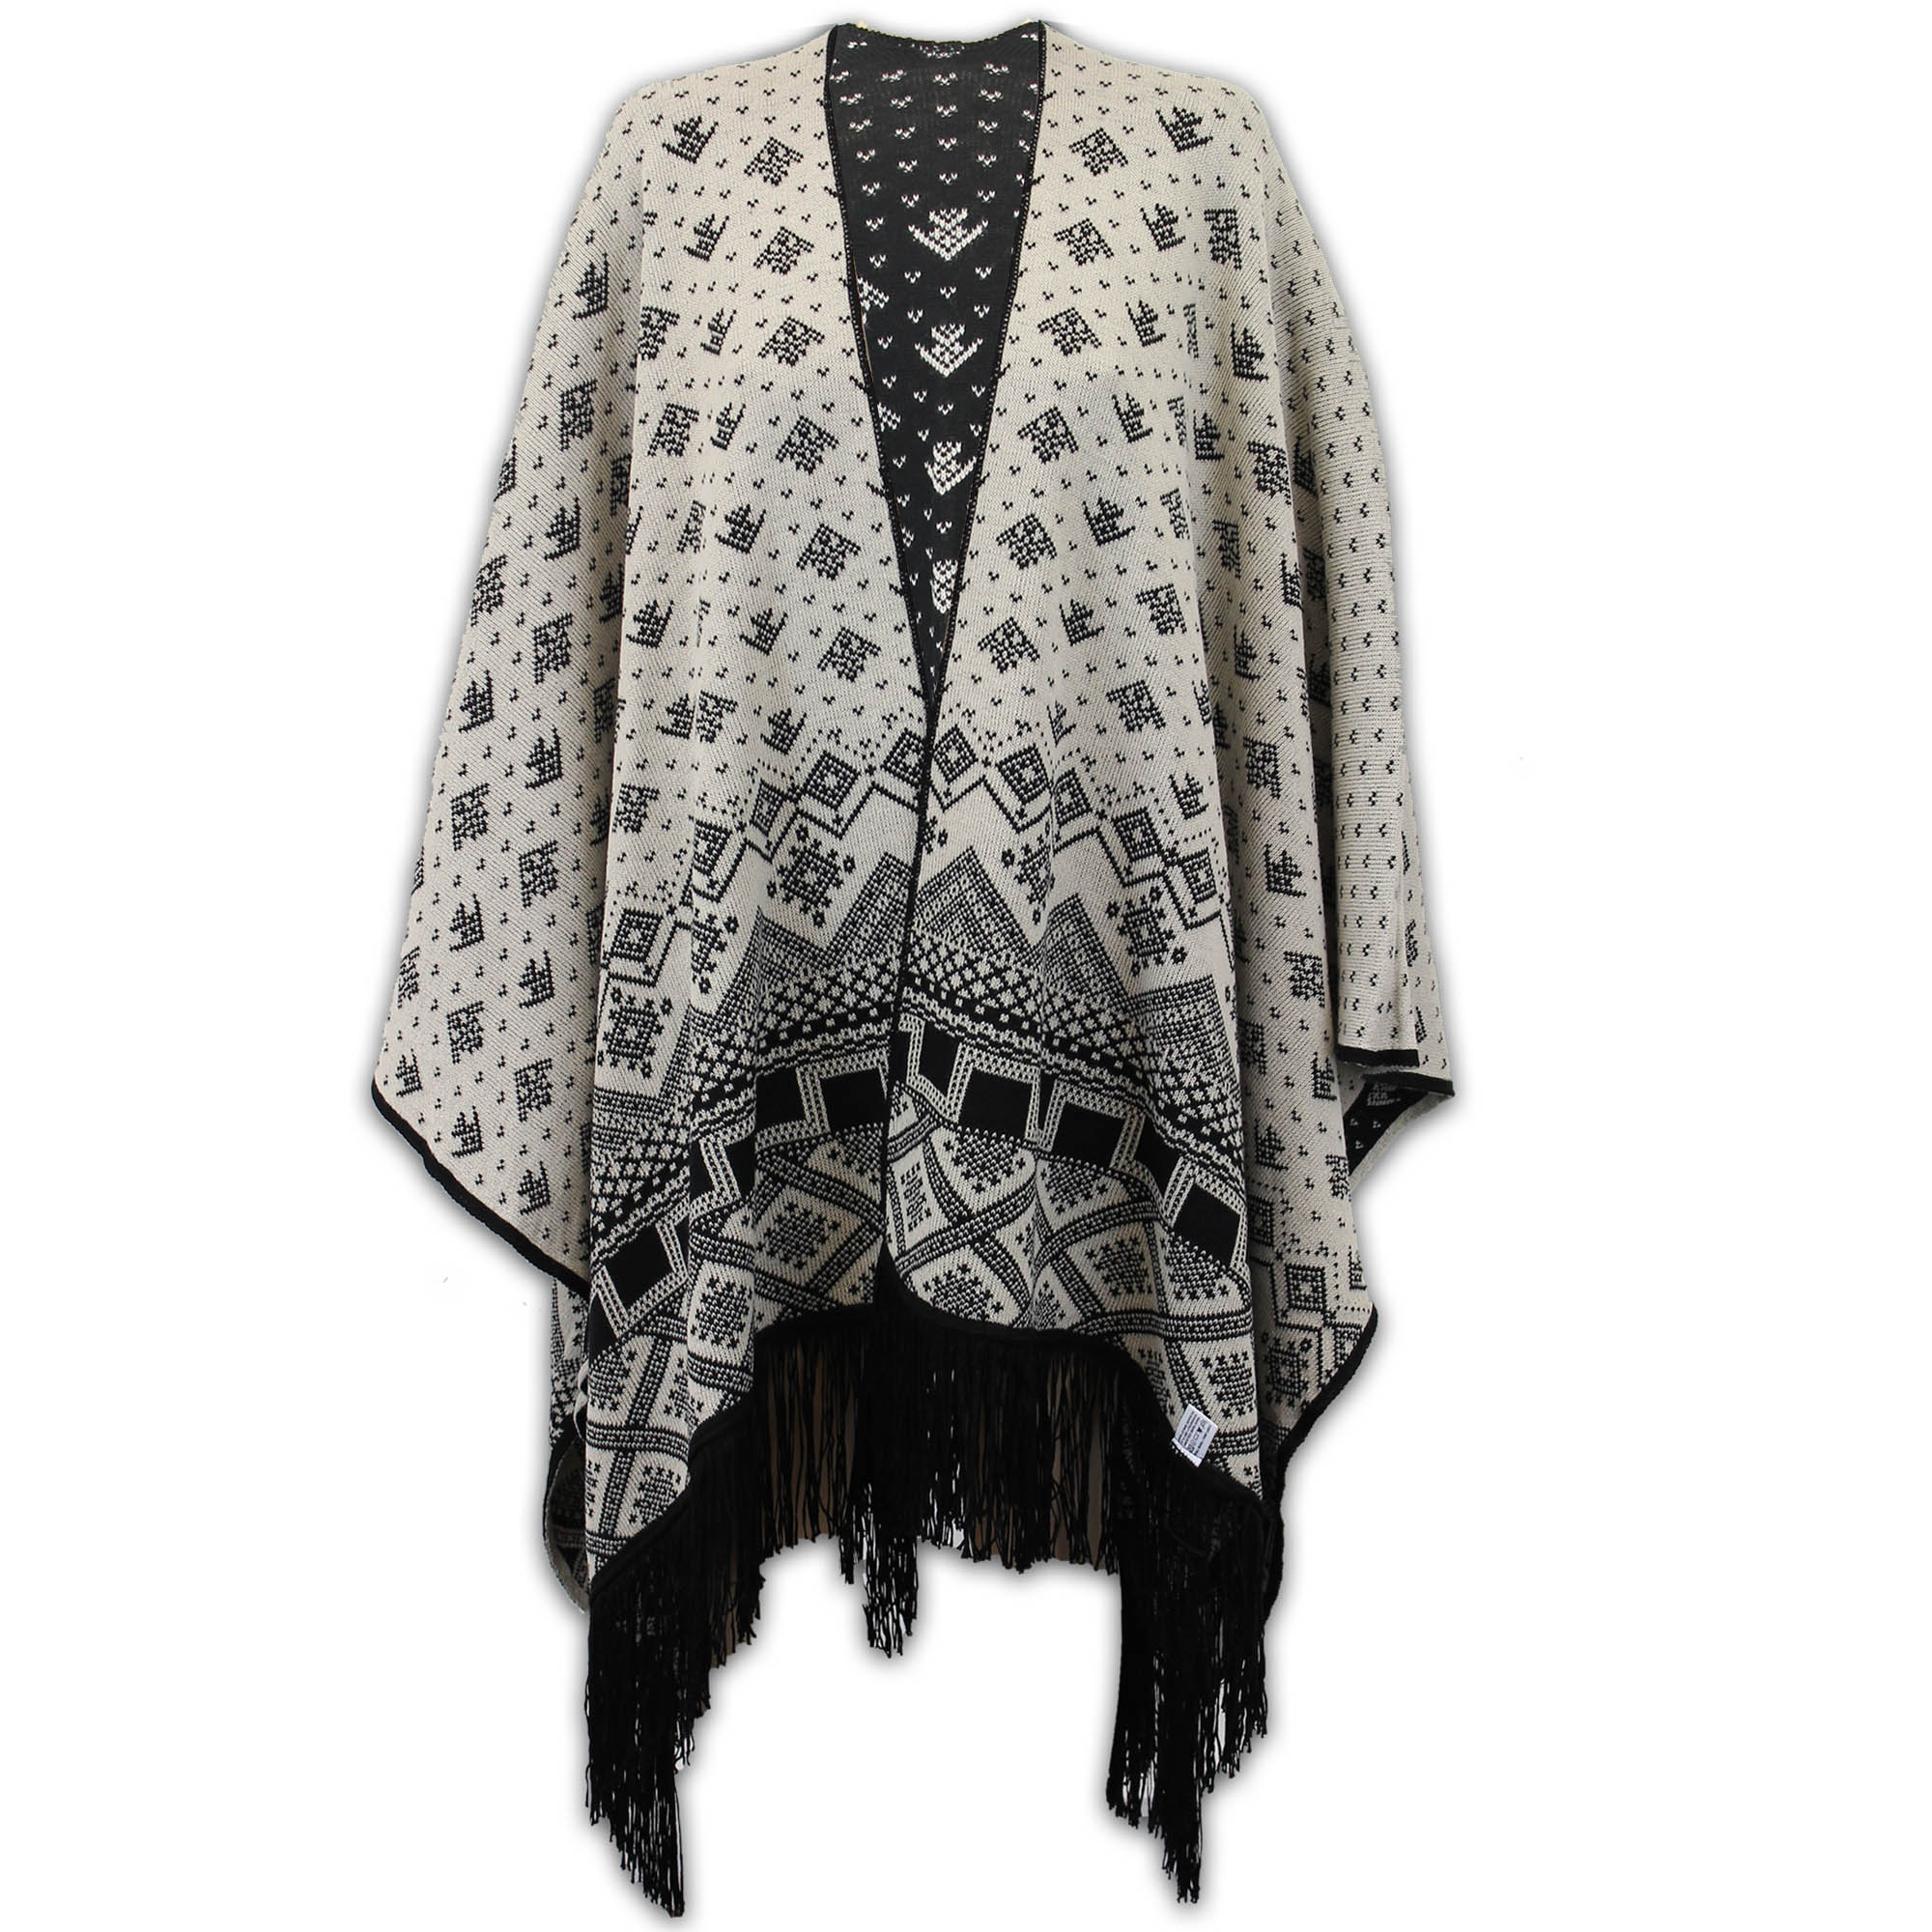 Ladies-Shawl-Womens-Knitted-Poncho-Cardigan-Reversible-Aztec-Cape-Oversized-New thumbnail 7